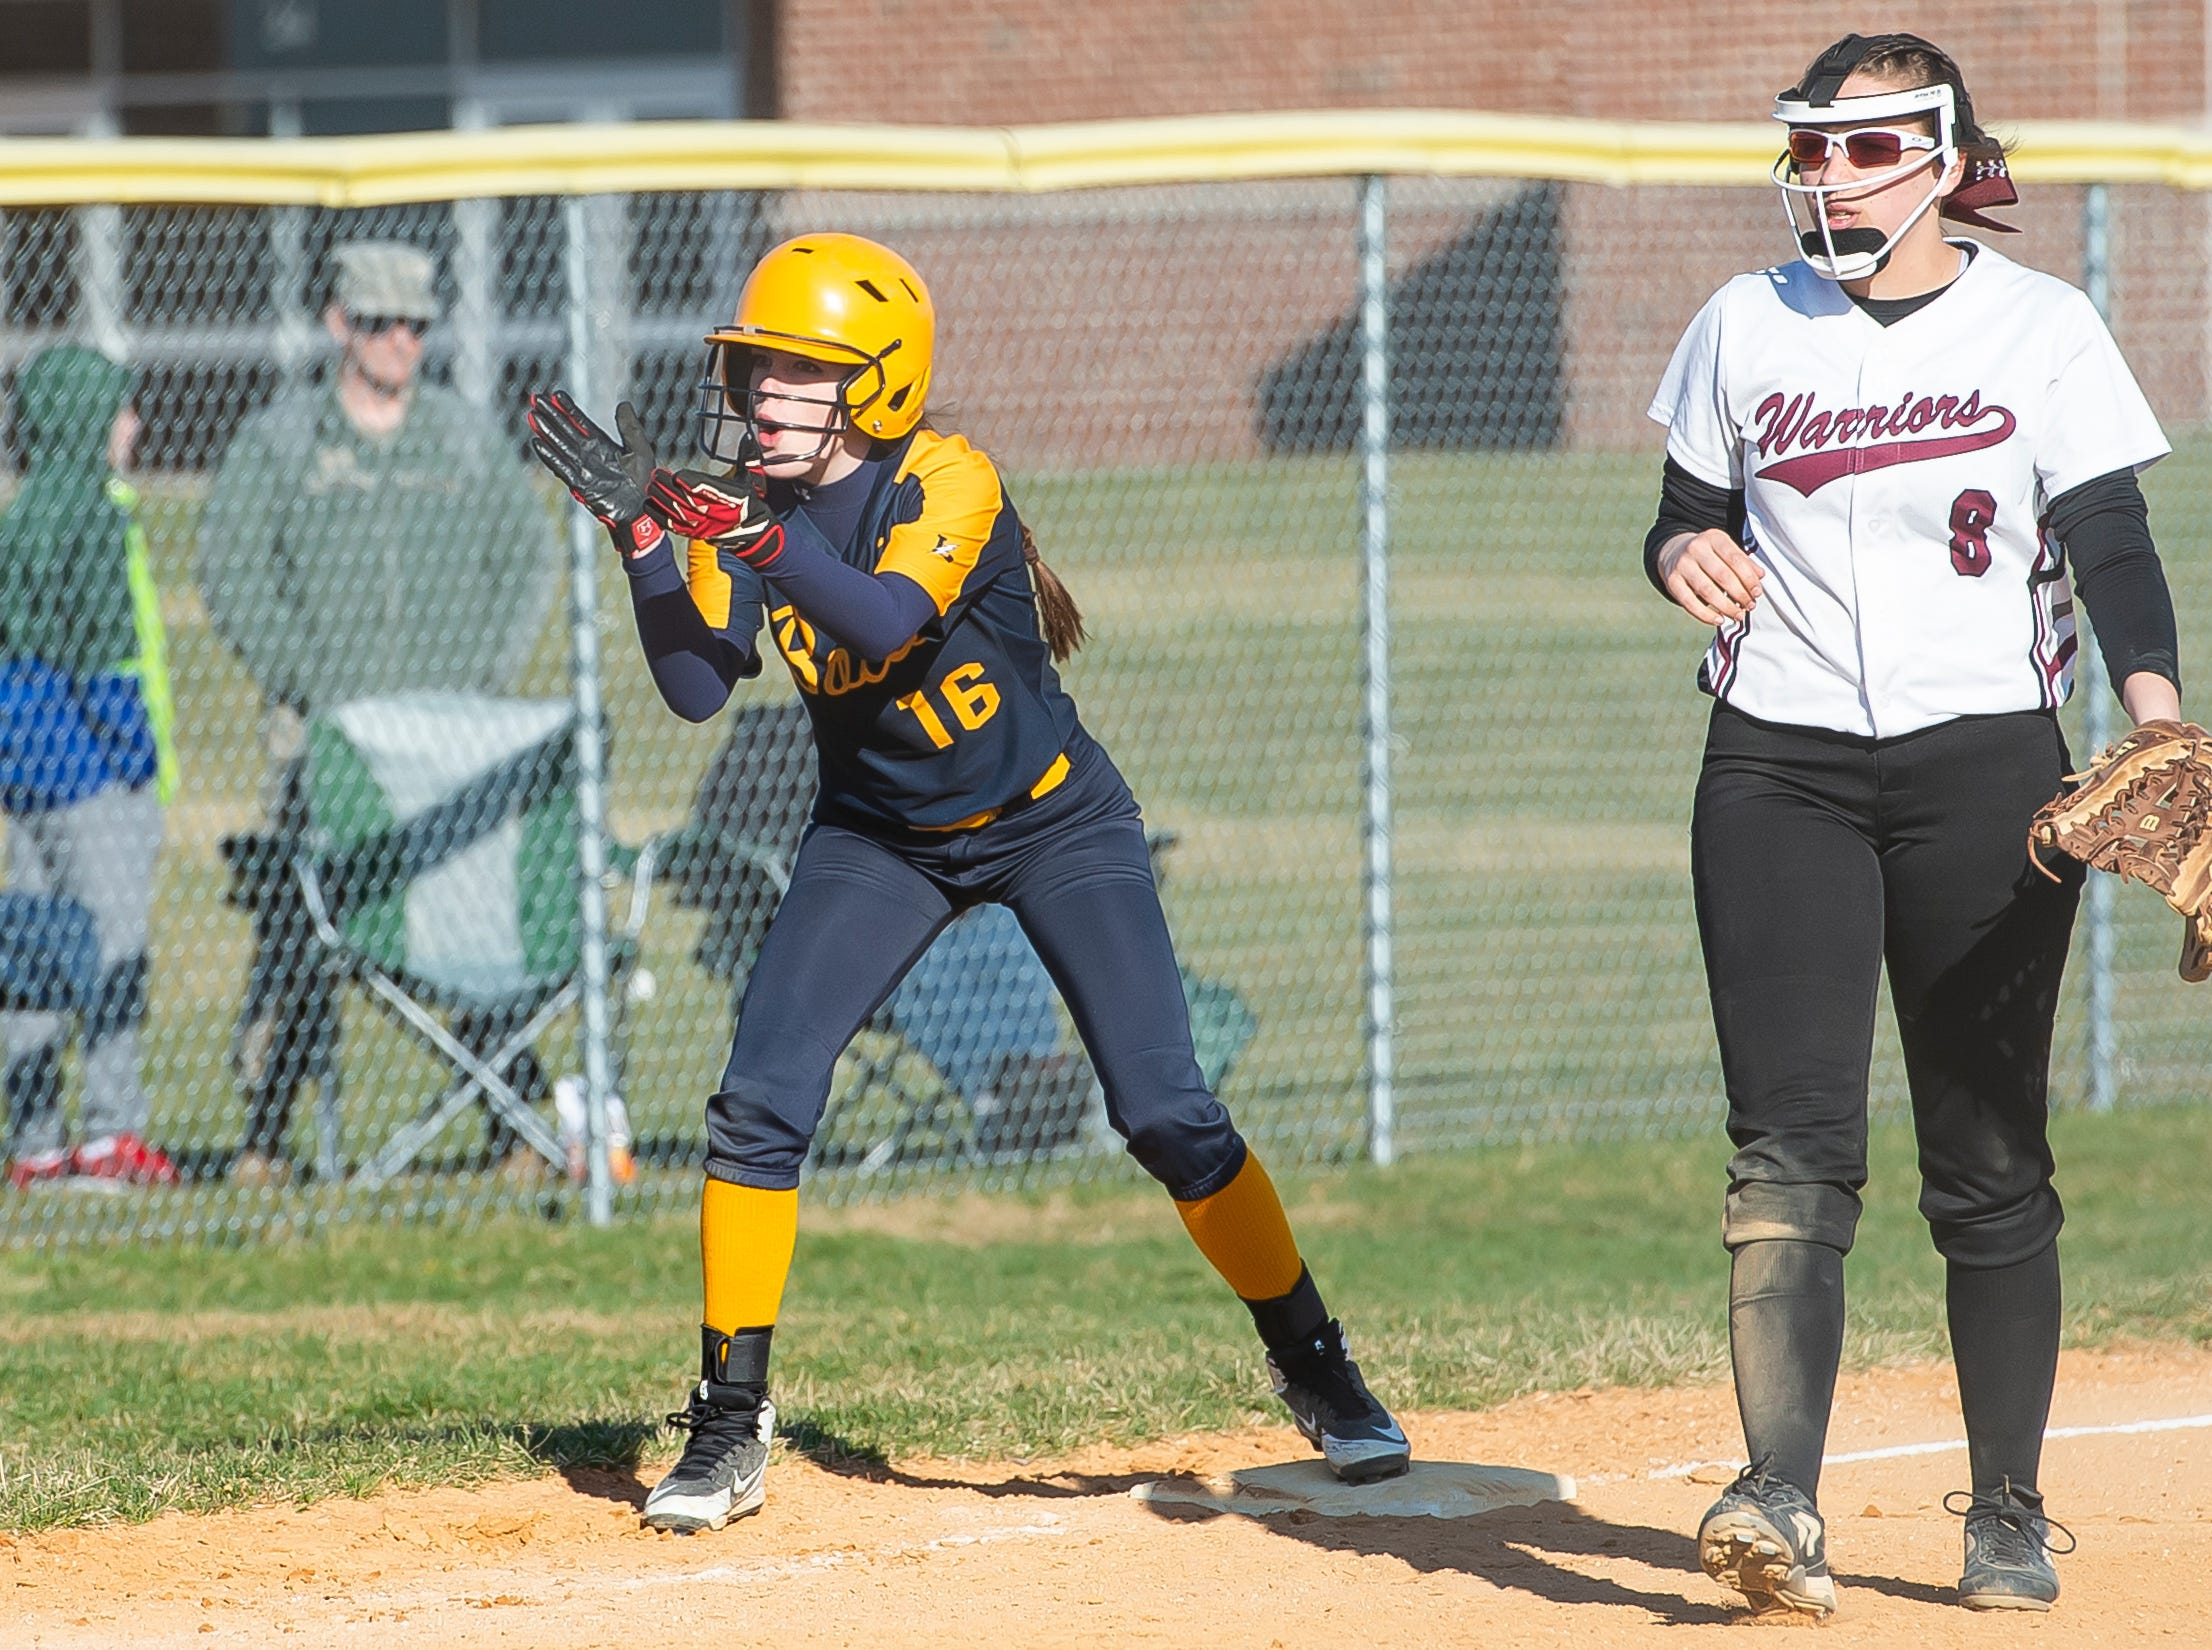 Littlestown's Jada Mummert cheers on her teammates from third base after the Bolts scored during a YAIAA softball game against Gettysburg on Monday, April 1, 2019. The Bolts won 10-4.